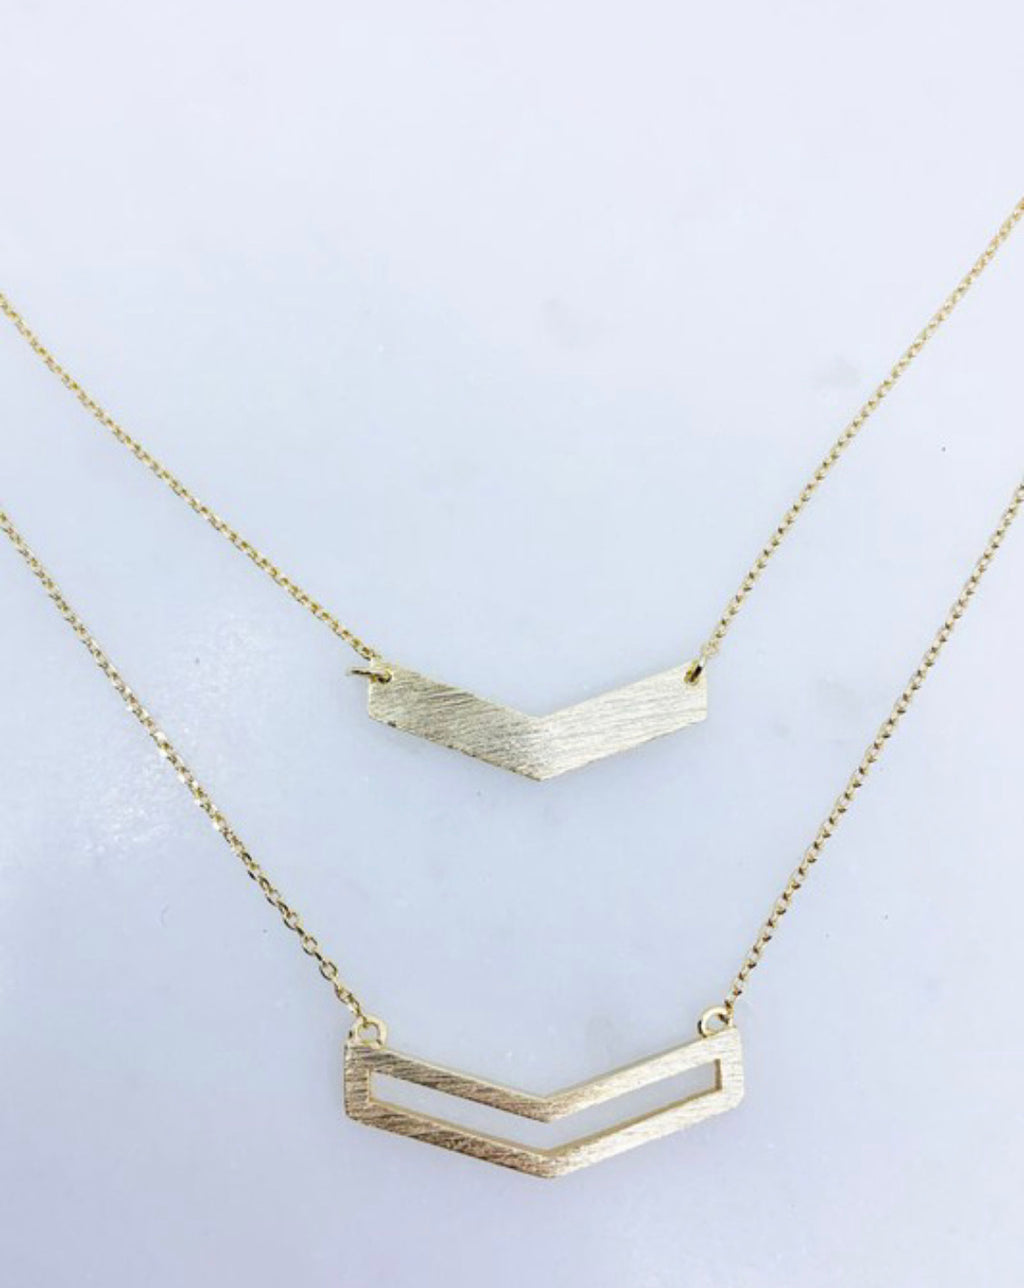 Double layered chevron necklace